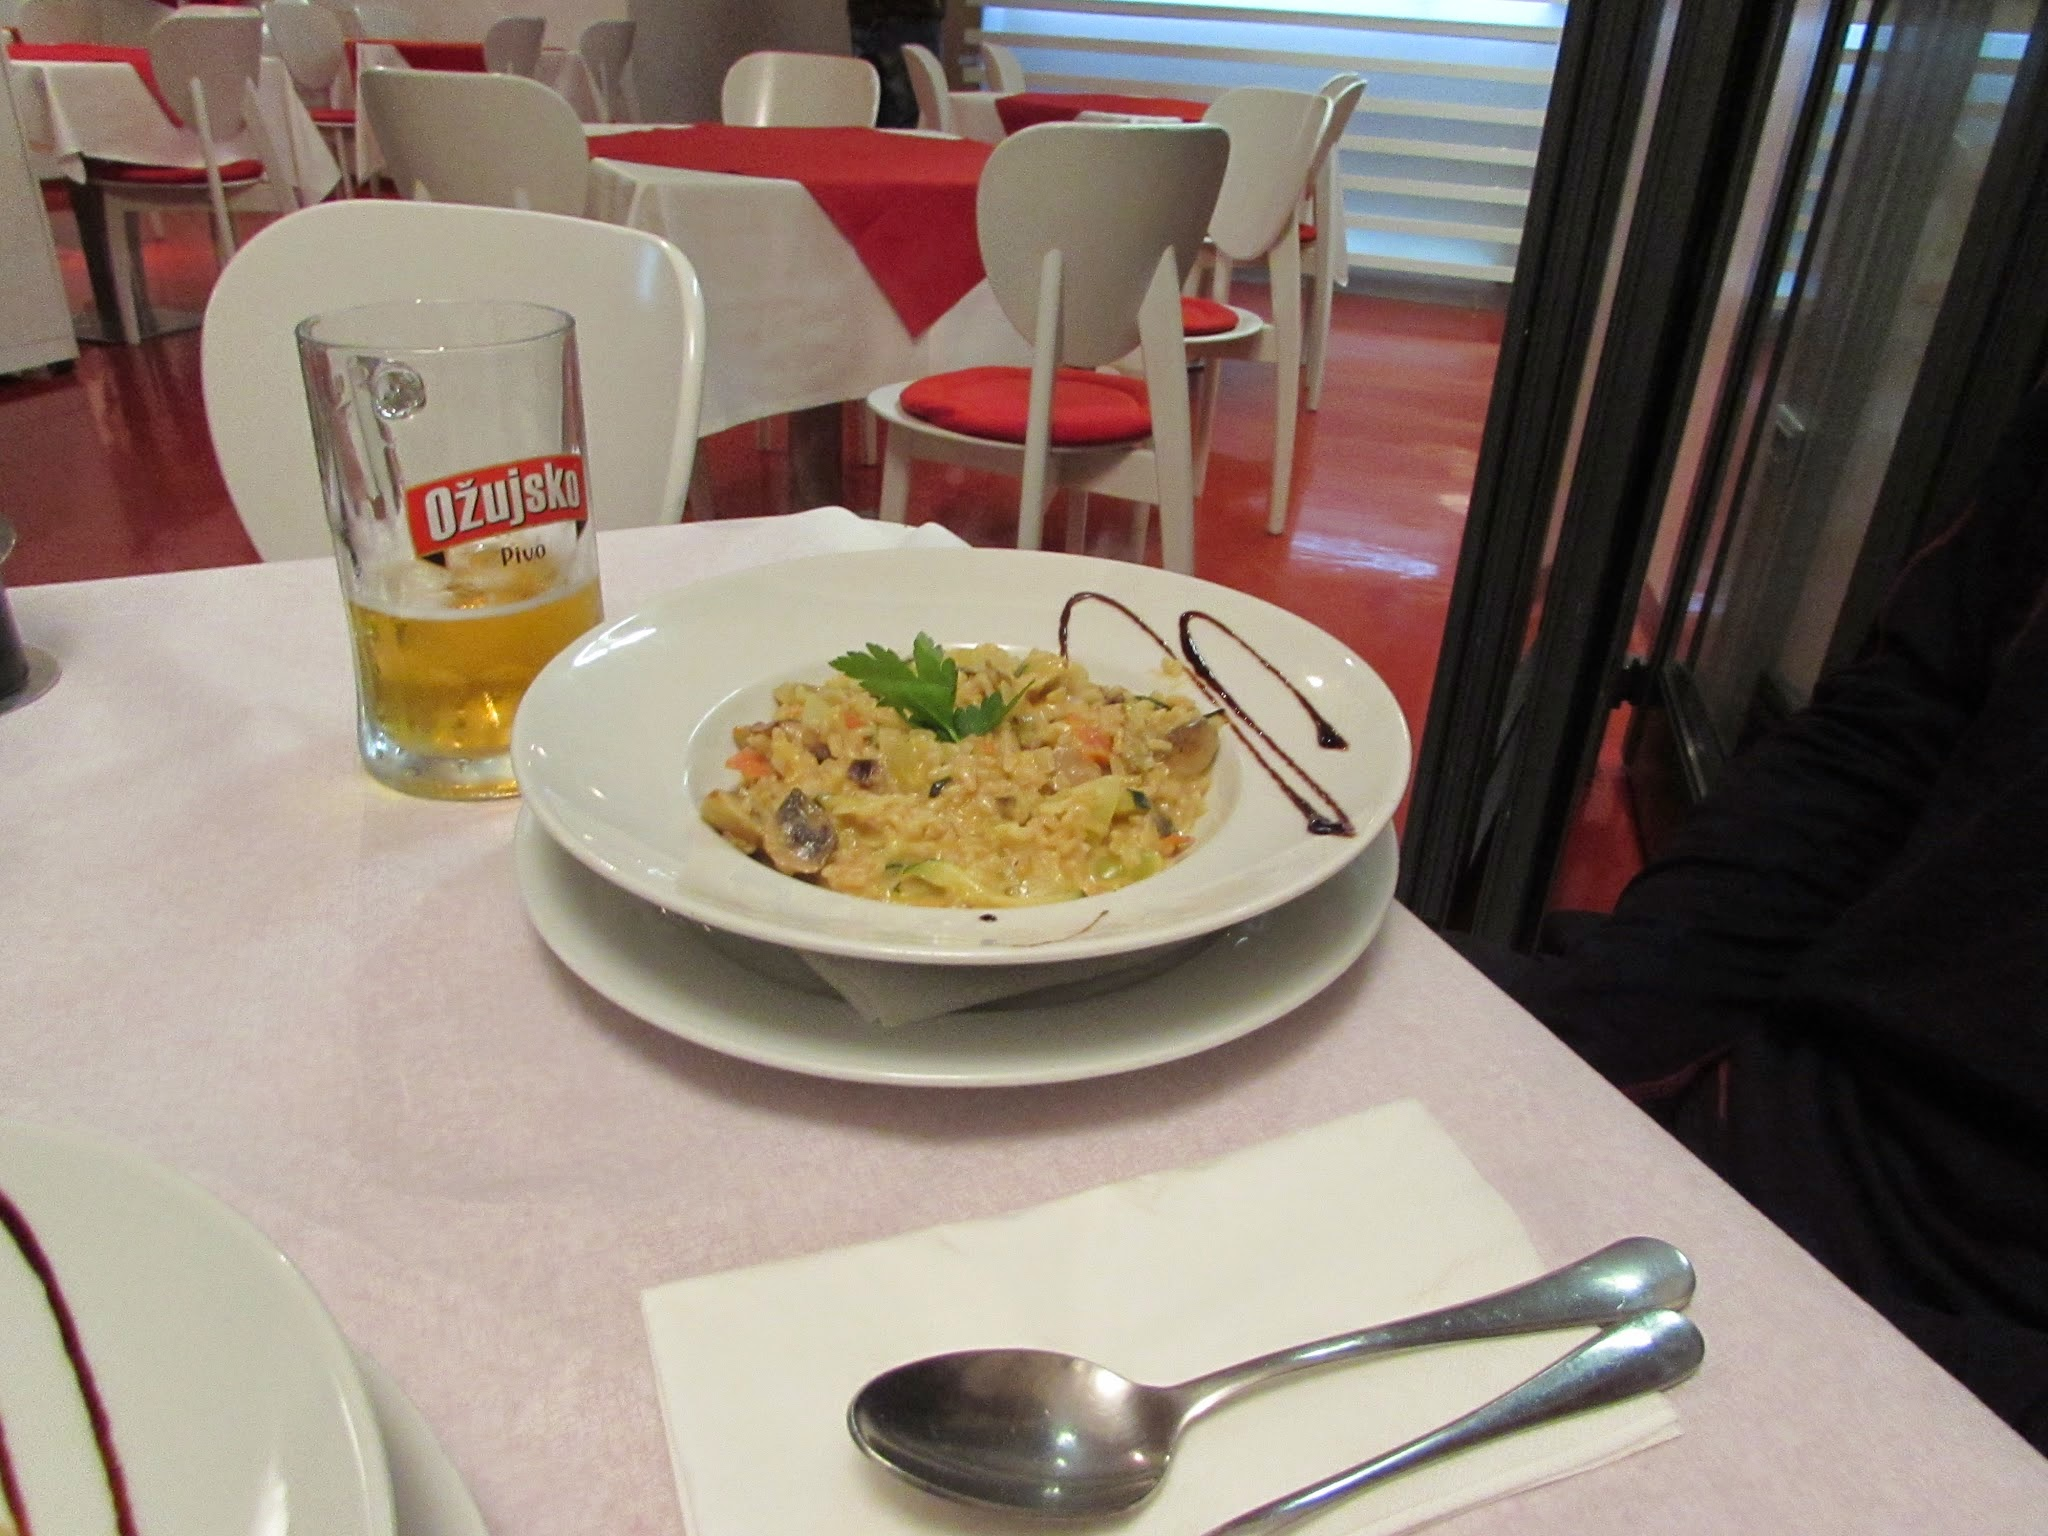 At the same restaraunt (in Fazana, north of Pula) Emmett got a carrot, onion, pepper, & mushroom risotto with some inexpensive Croatian beer.